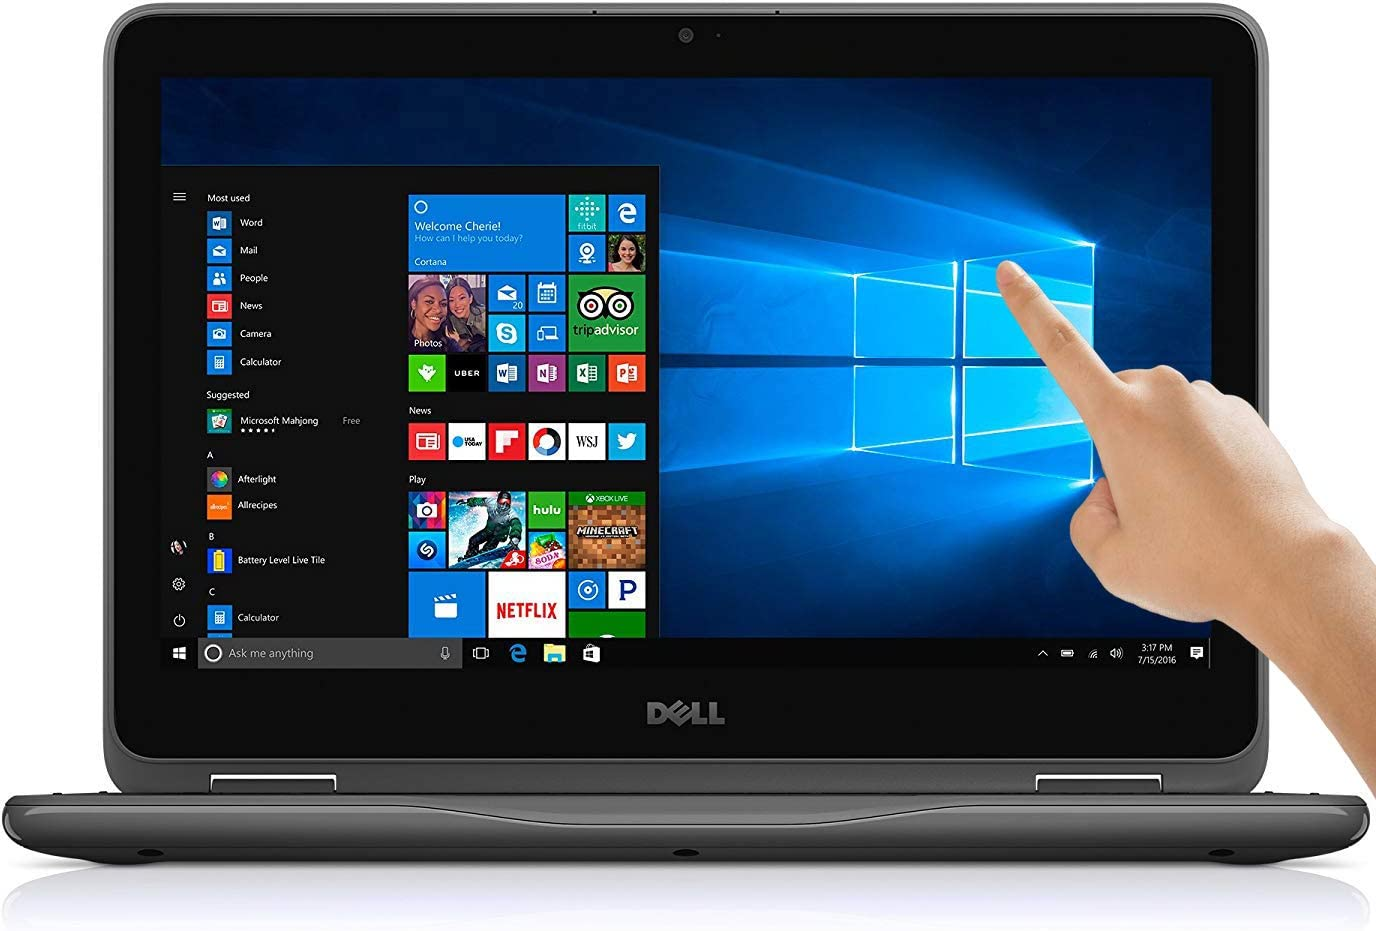 Dell Inspiron 11.6 inch Touchscreen 360 Convertible 2 in 1 Laptop, 11.6 HD (1366 x 768) Display, AMD A9-9420e 2.6GHz, 4GB DDR4 RAM, 500GB HDD, AMD APU, Windows 10